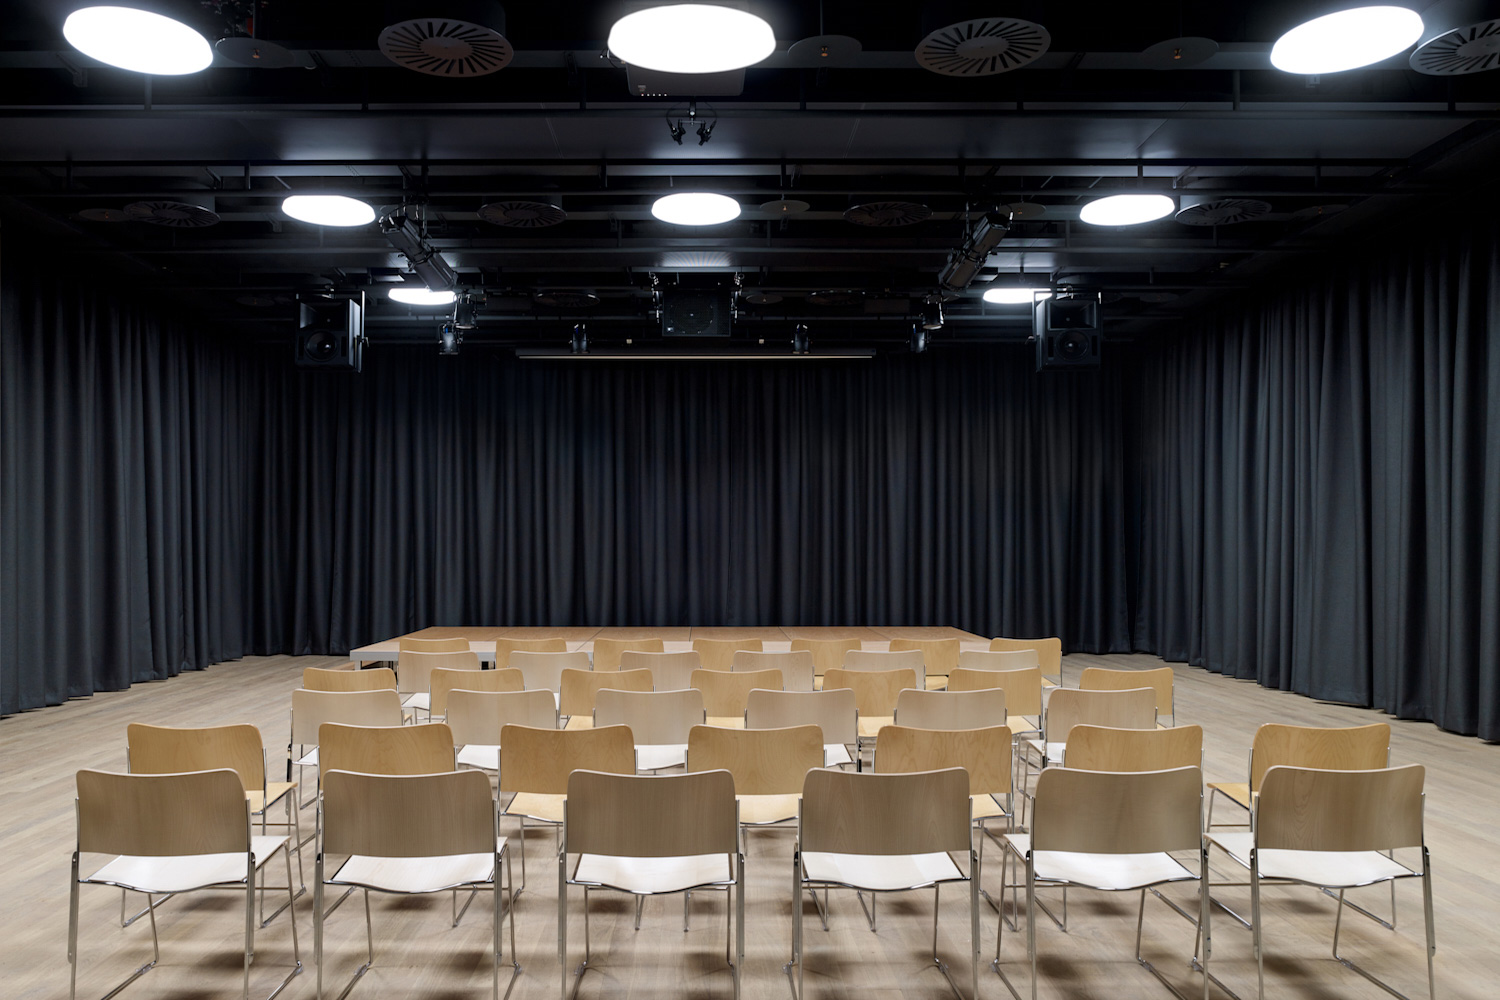 Schweizer Radio und Fernsehen broadcasting company relocated their Basel facilities and WSDG's services were retained to tune the acoustics of these rooms and ensure high-quality working areas for SRF. Live radio drama room and auditorium.